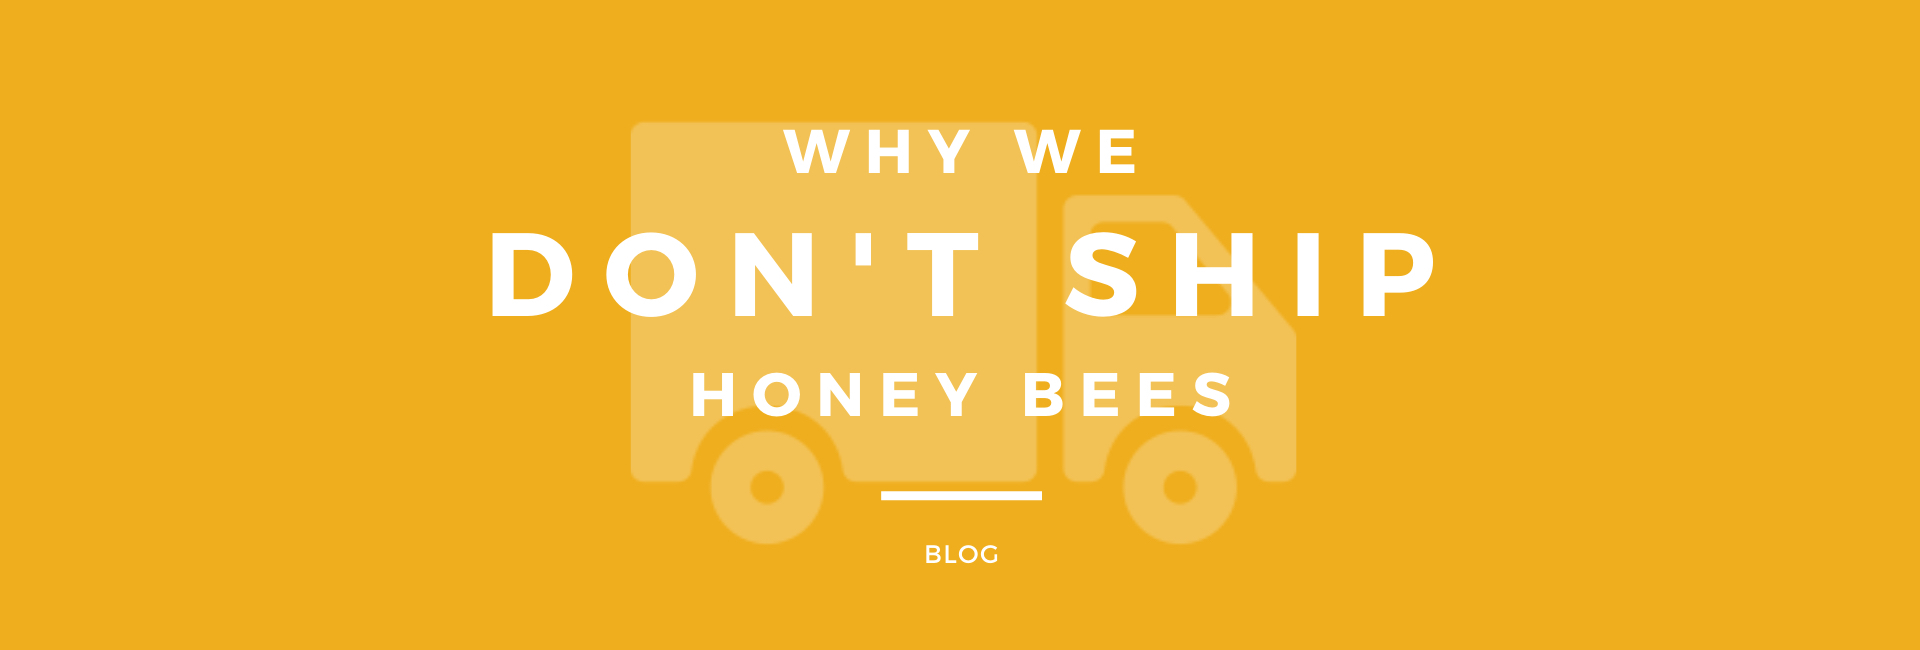 Why We Don't Ship Honey Bees - Bear Country Bees